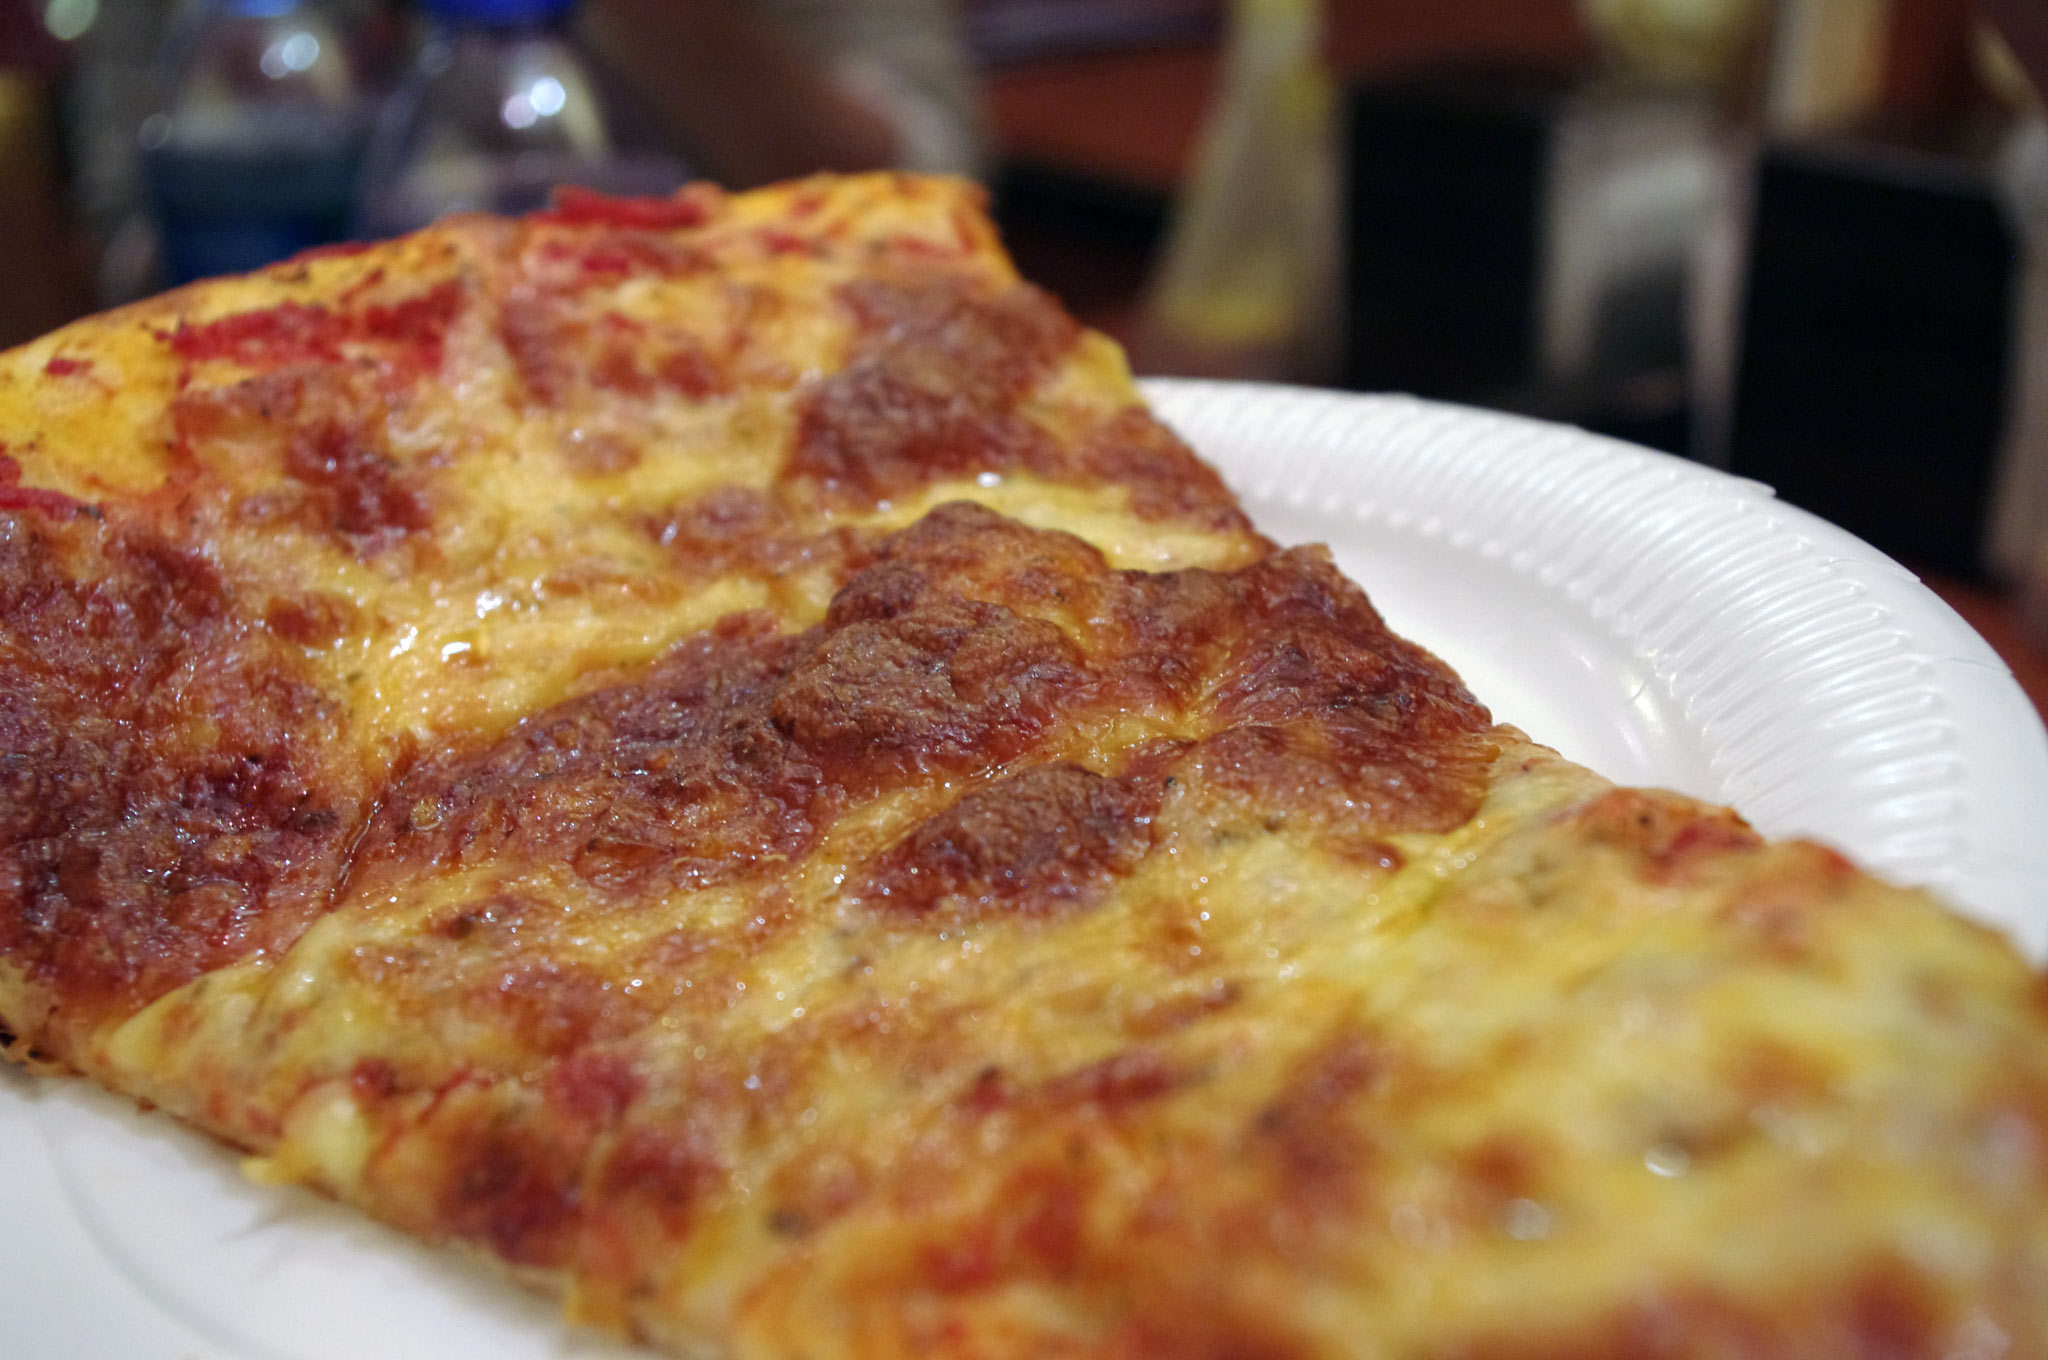 Pizza at Paisano's Pizzeria & Sub Shop in Hong Kong. Photo by alphacityguides.